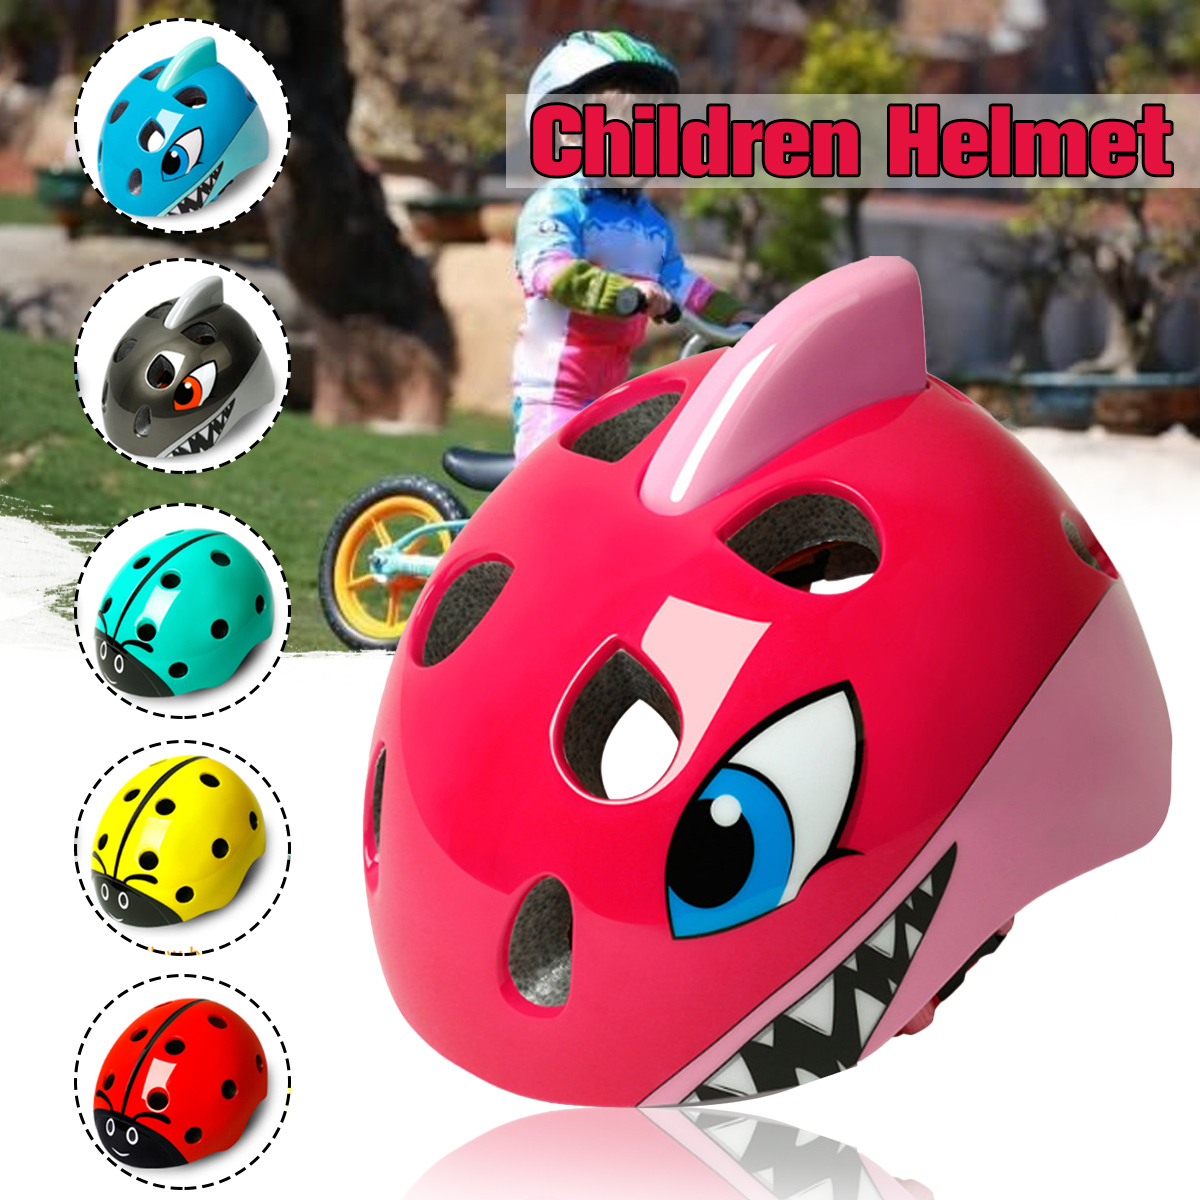 UltraLight Kids Bicycle Helmets Children Cycling Helmet Road Bicycle Kid Headpiece For Outdoor Sports Riding Skating Skiing|Bicycle Helmet| |  - title=